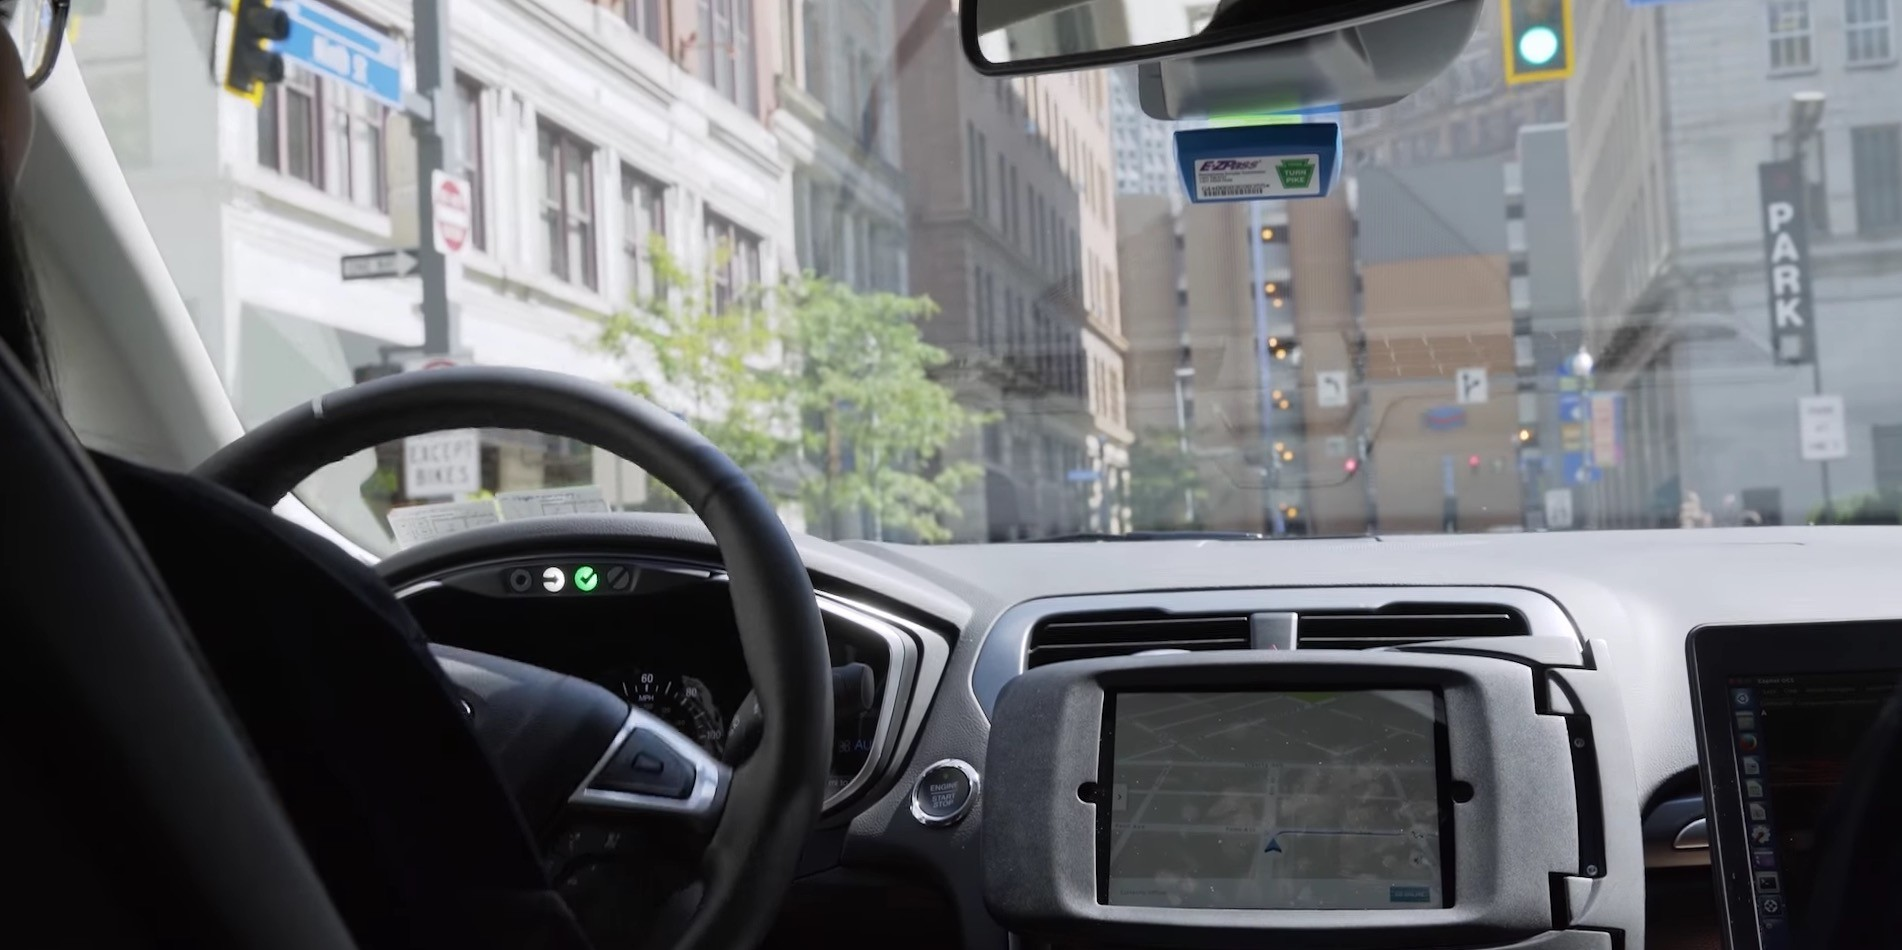 NYC Uber Driver Caught Peeing in a Bottle, with Passenger in